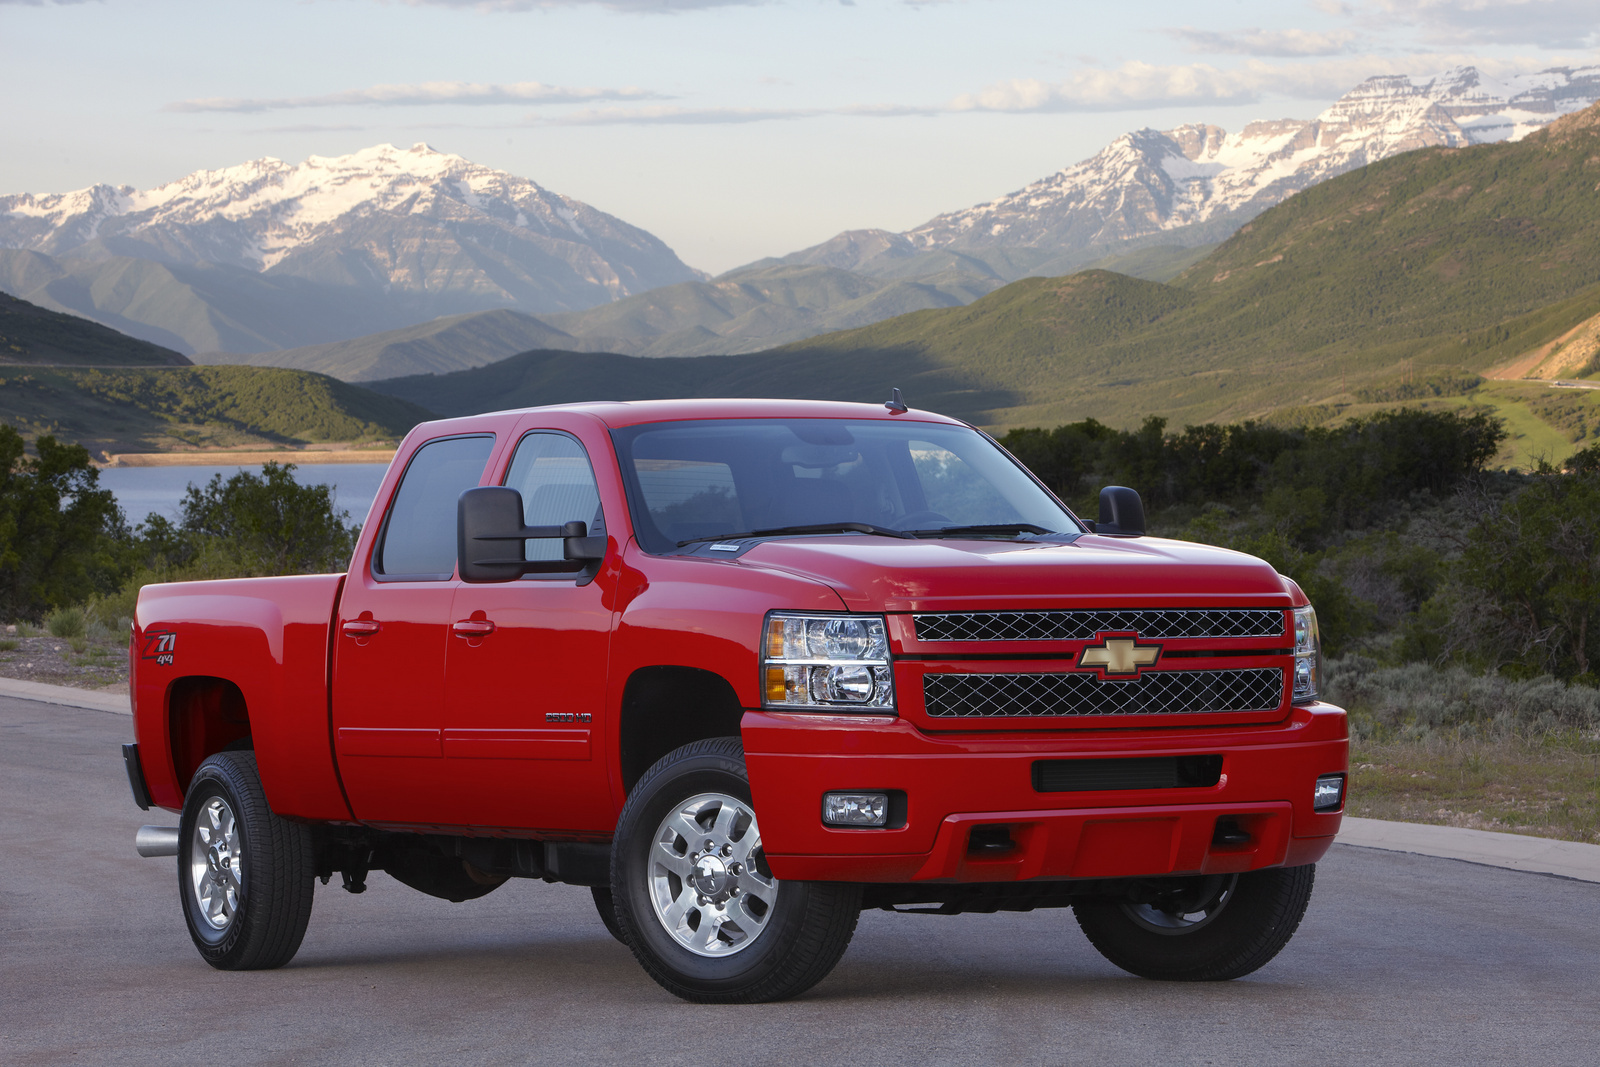 2013 chevrolet silverado 2500hd overview cargurus. Black Bedroom Furniture Sets. Home Design Ideas